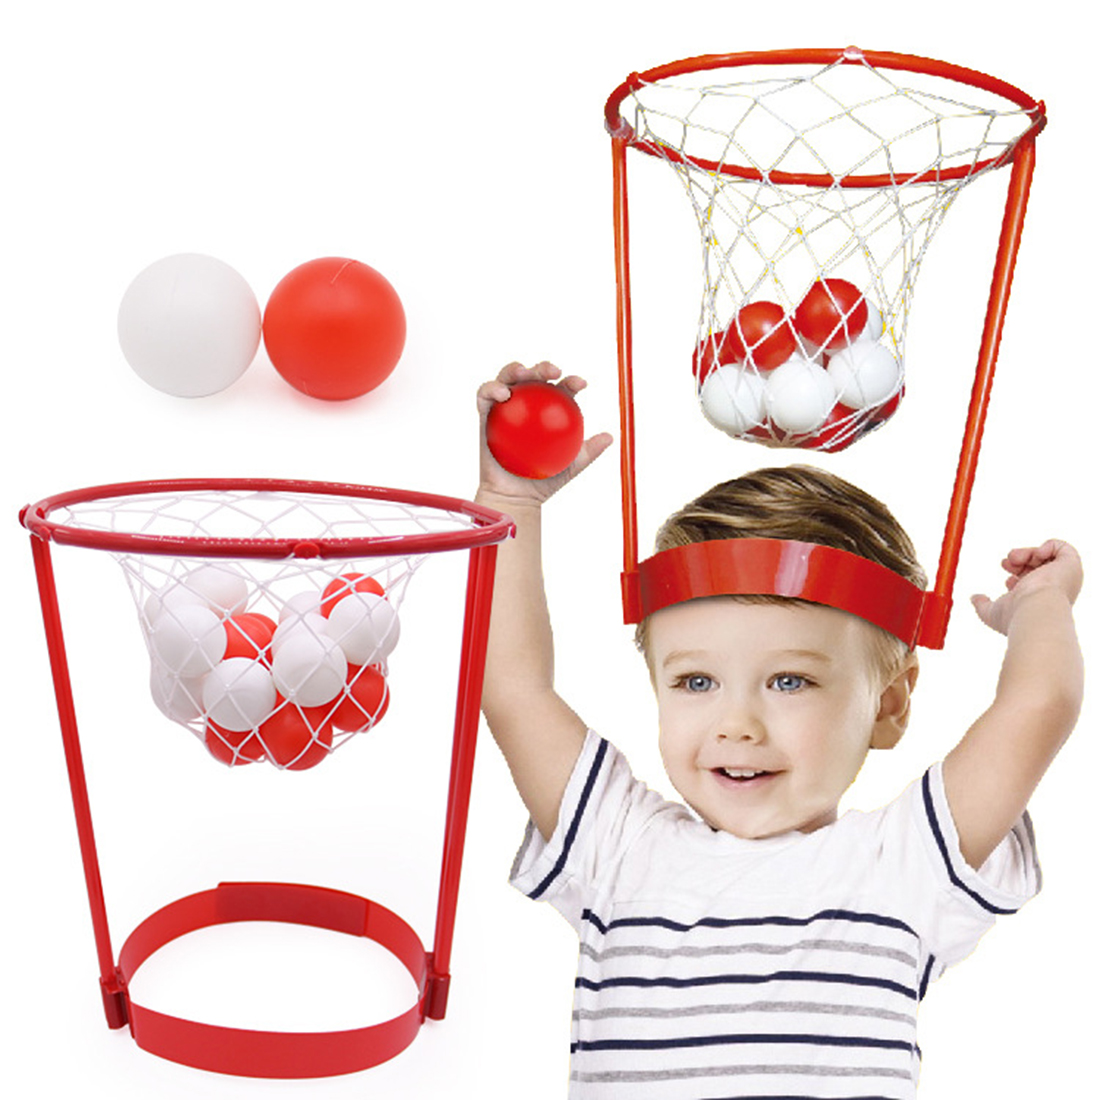 Children Headband Hoops Catching Basketball Board Indoor And Outdoor Sports Educational Early Toys Parent-Child Interaction